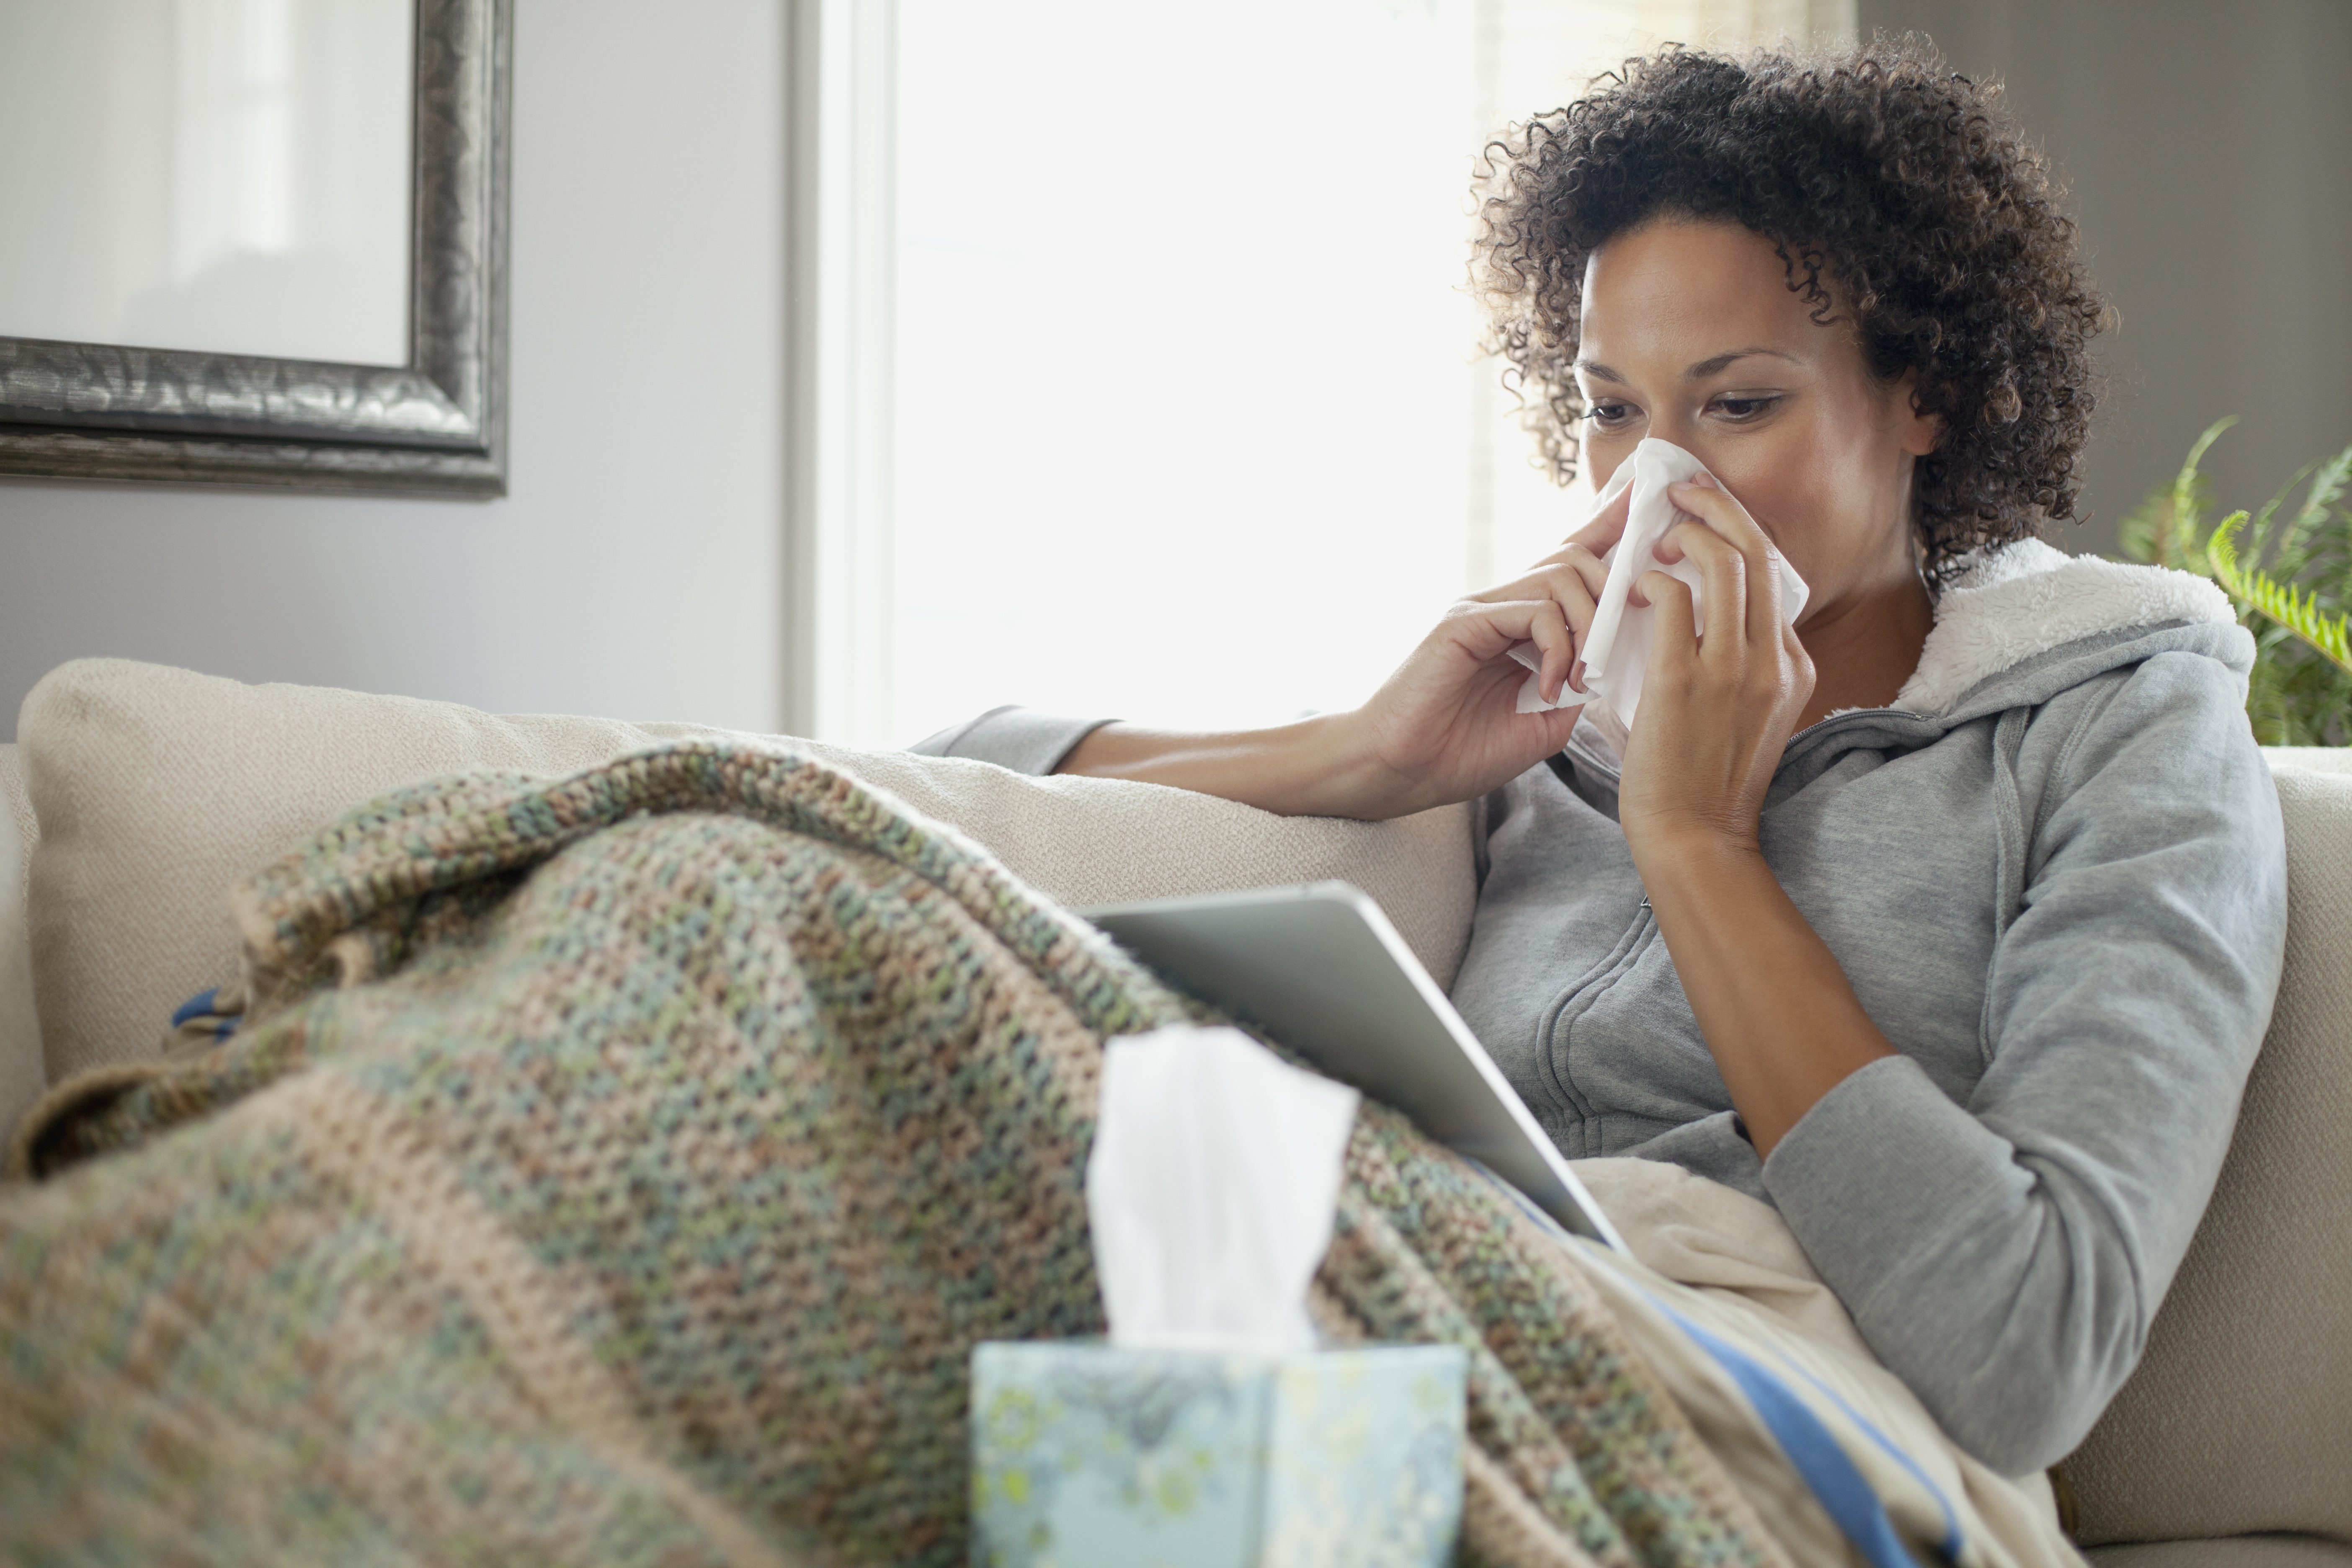 How long does the flu last?